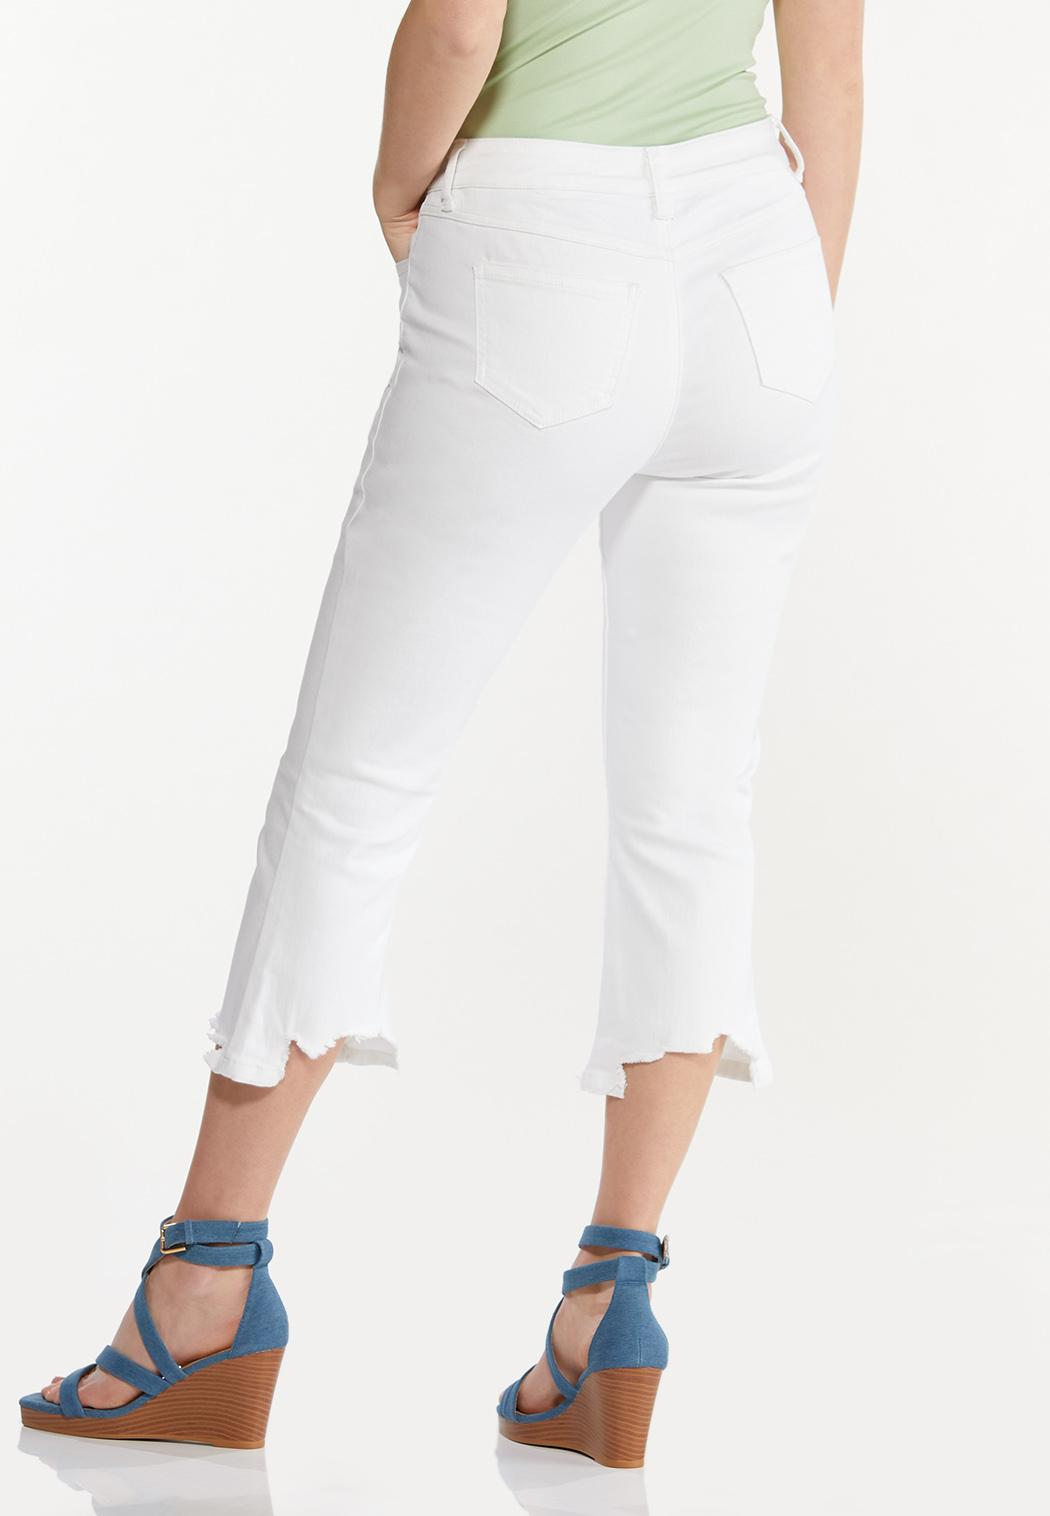 Cropped White Frayed Jeans (Item #44551704)